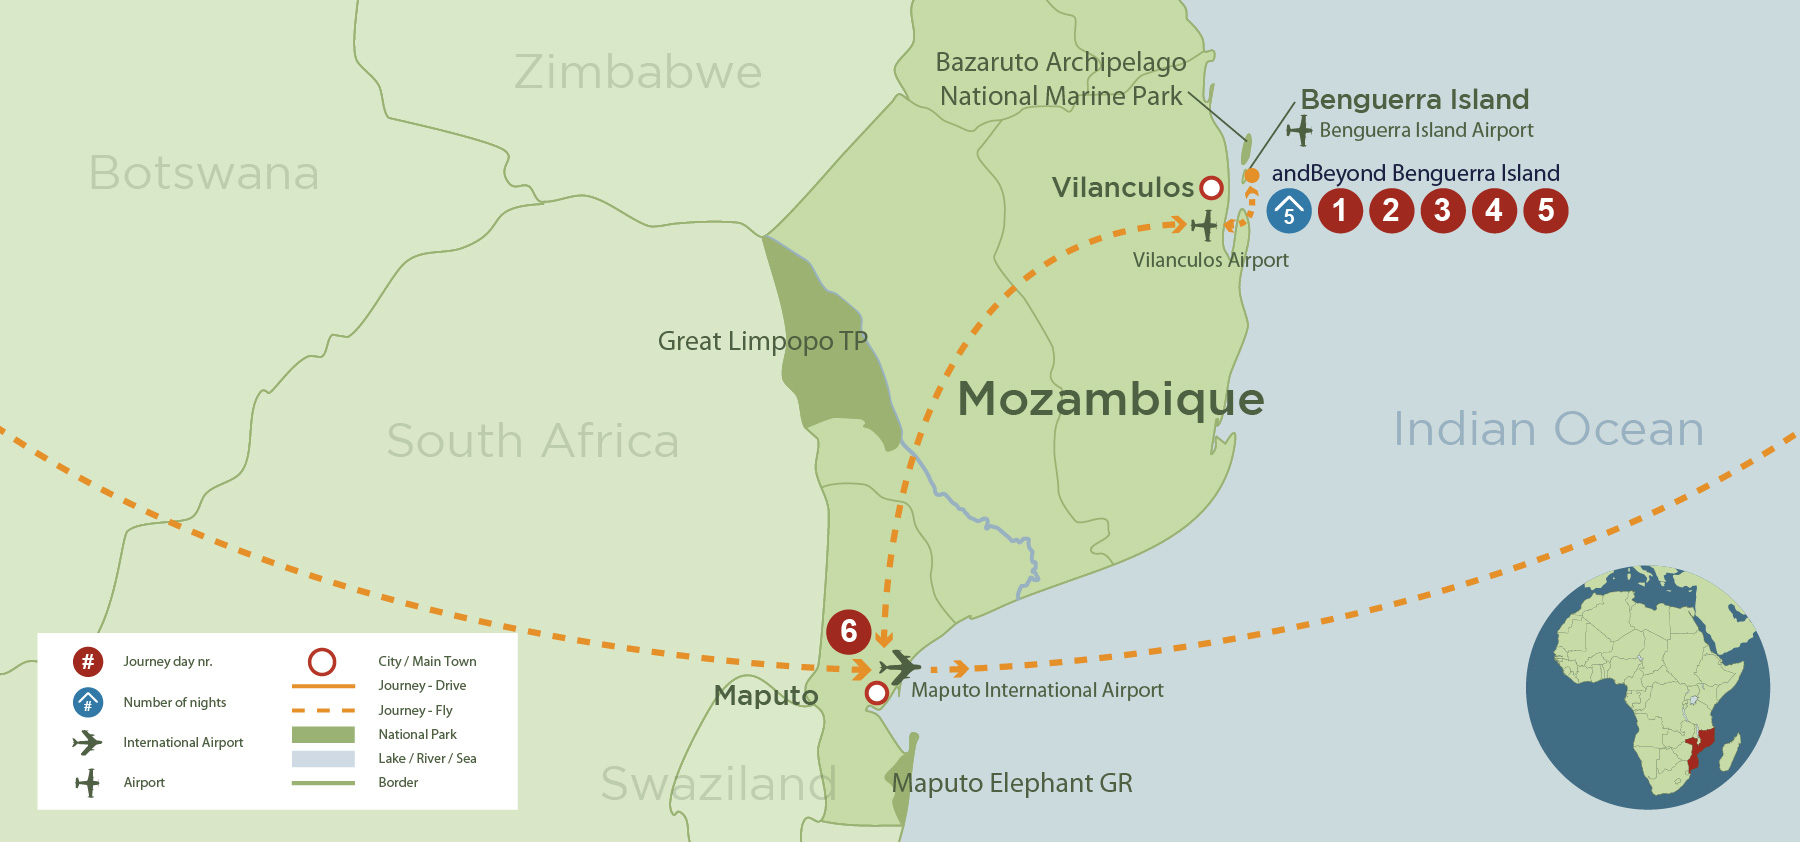 Mozambique Honeymoon (SA 6 days) safari map